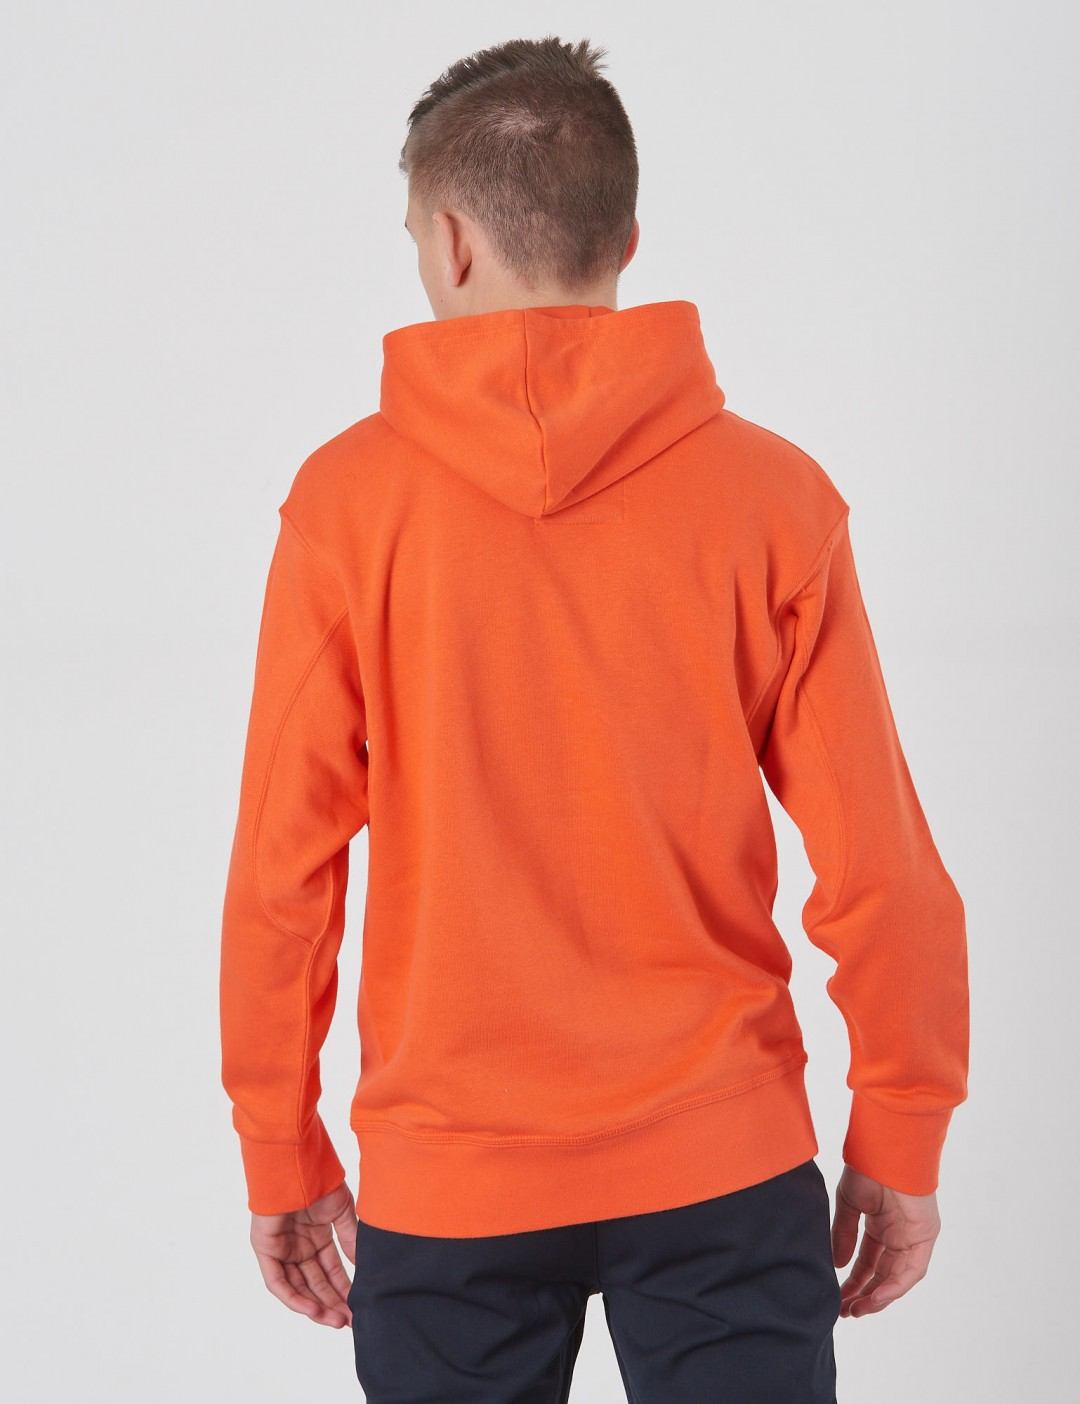 the latest 7a6d3 79140 ... Adidas Originals - KAVAL HOODIE ...